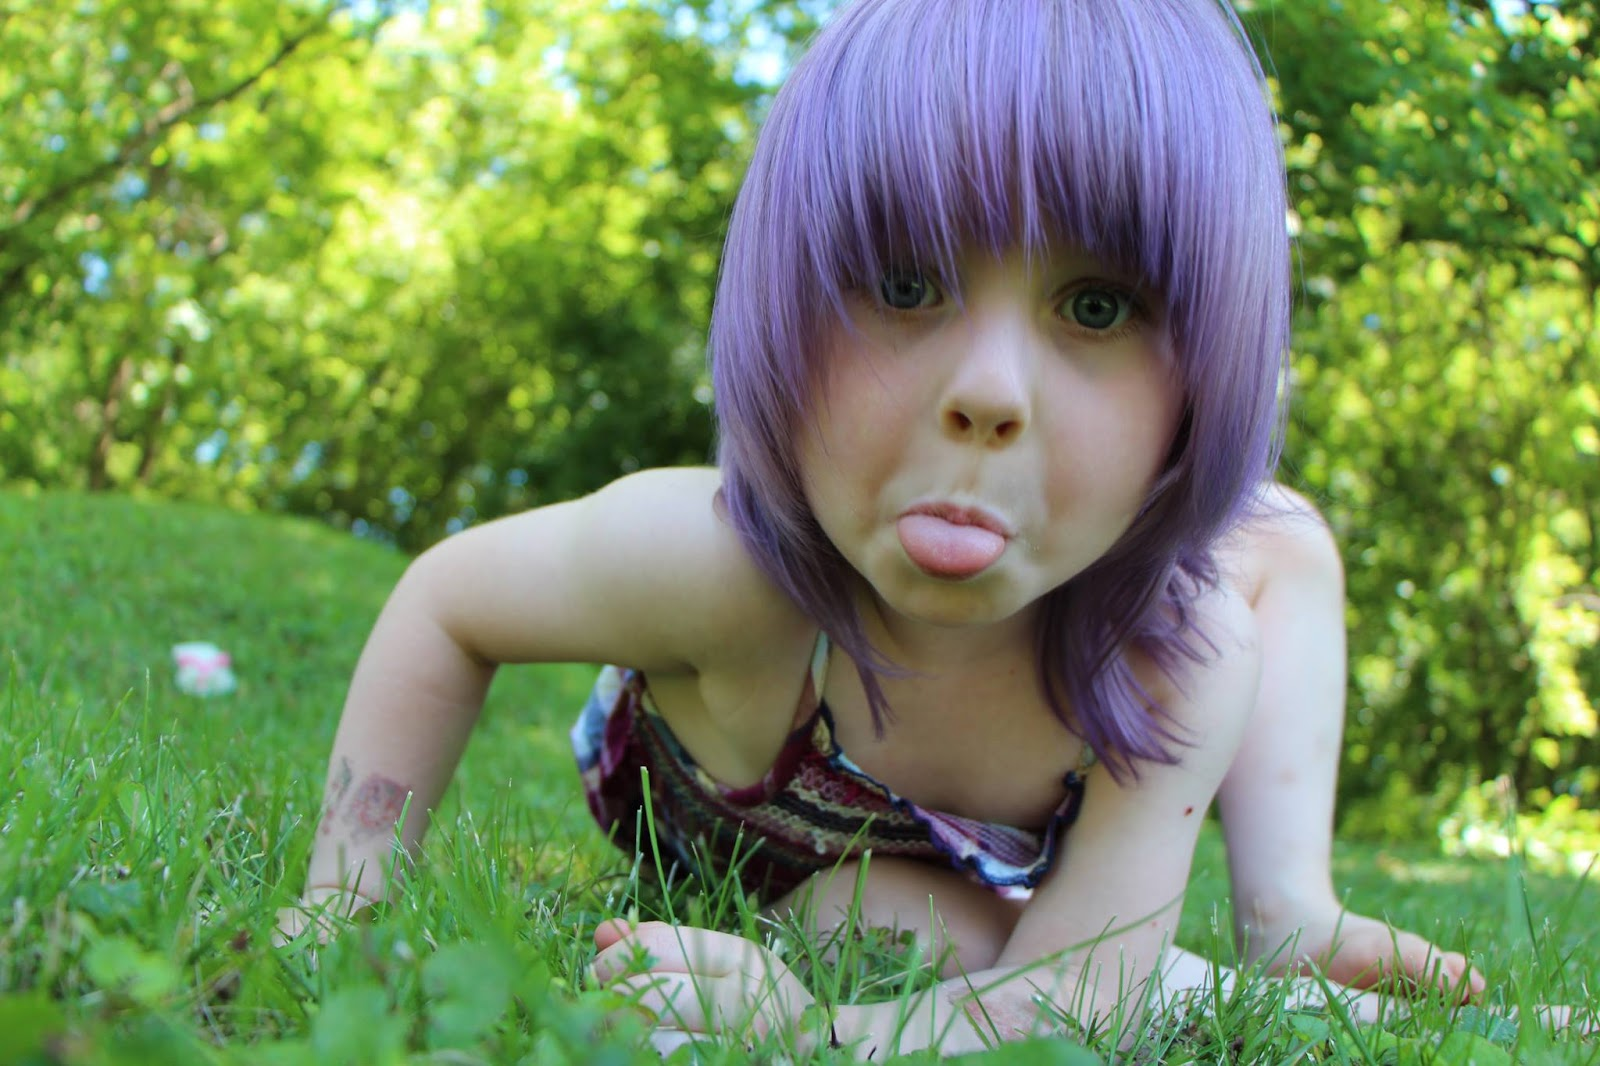 Kids can have purple hair! (image credit: Sandy Jorgenson)